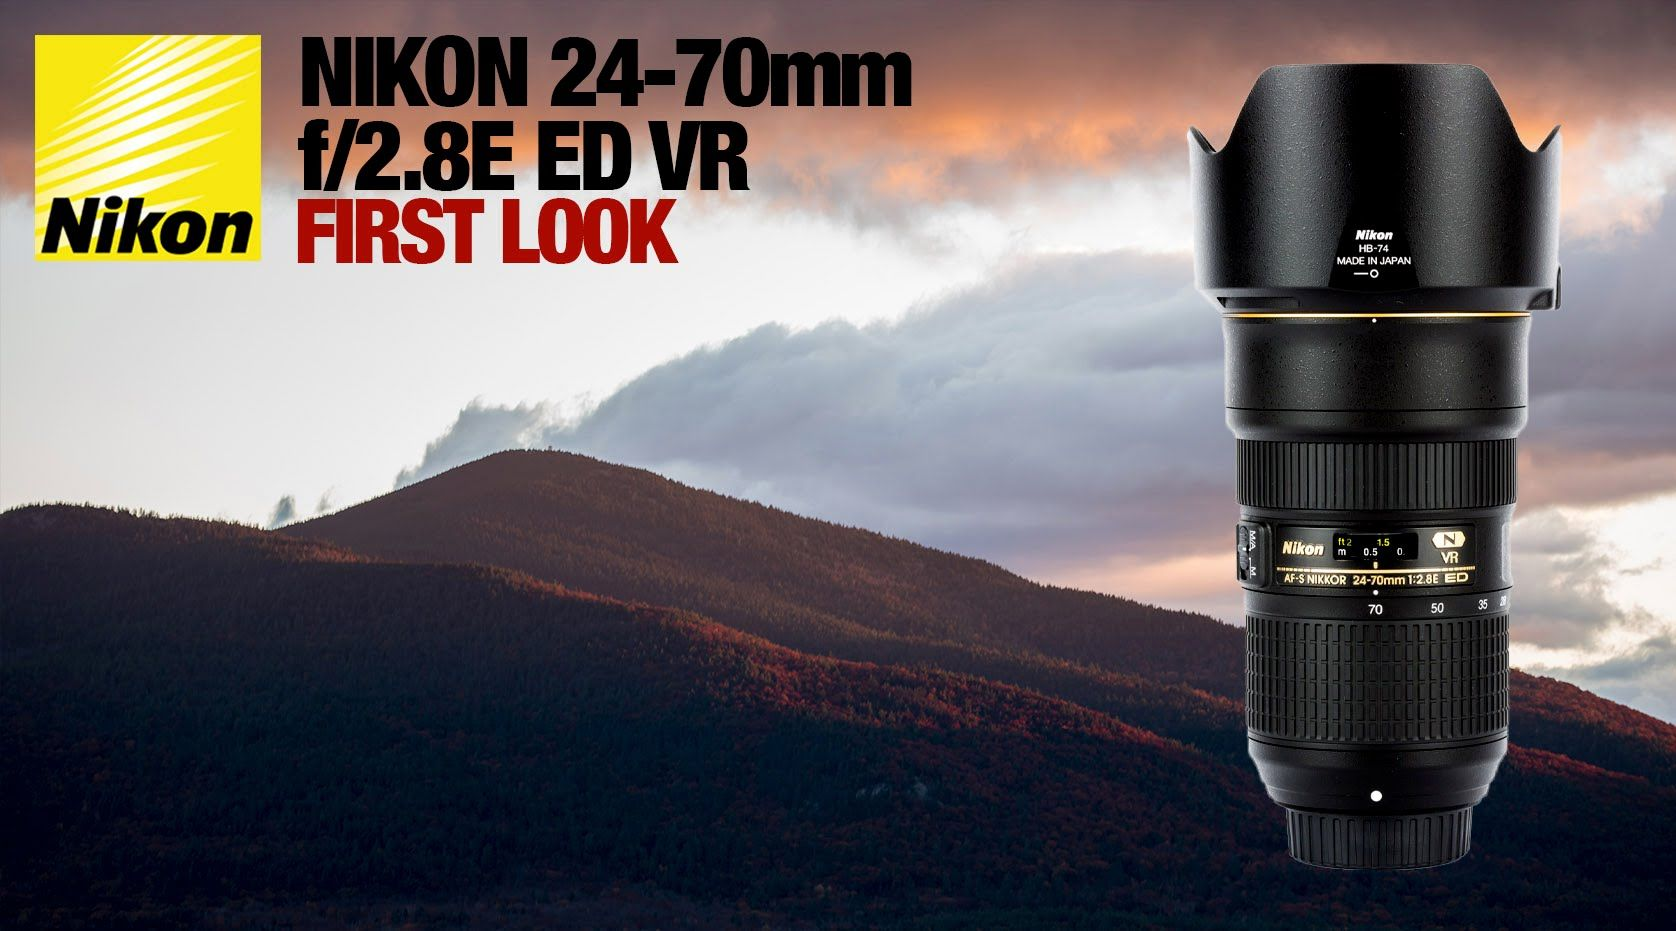 Nikon 24 70 F 2 8 E Vr First Look Nikon First Look One